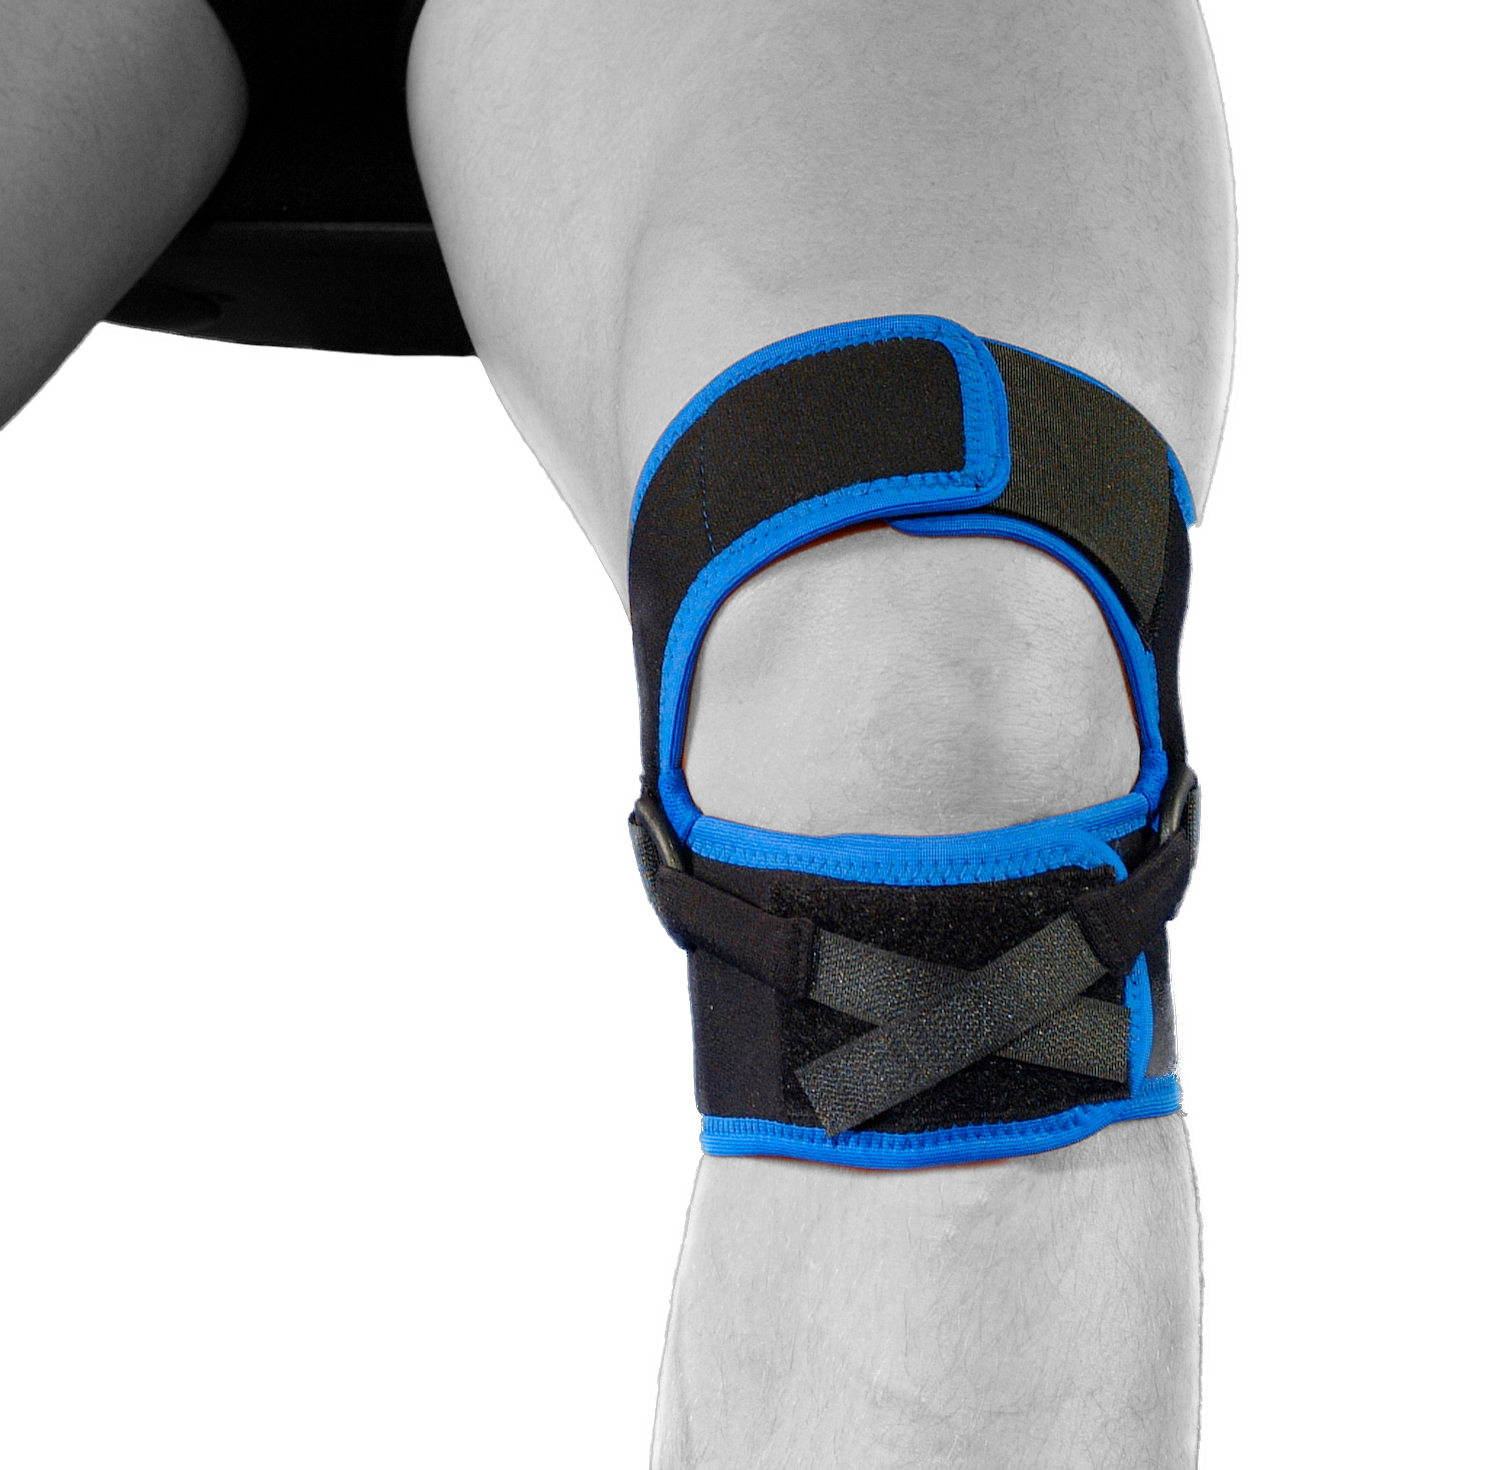 5239cd9608 Knee brace for Osgood-Schlatters disease and Jumpers knee